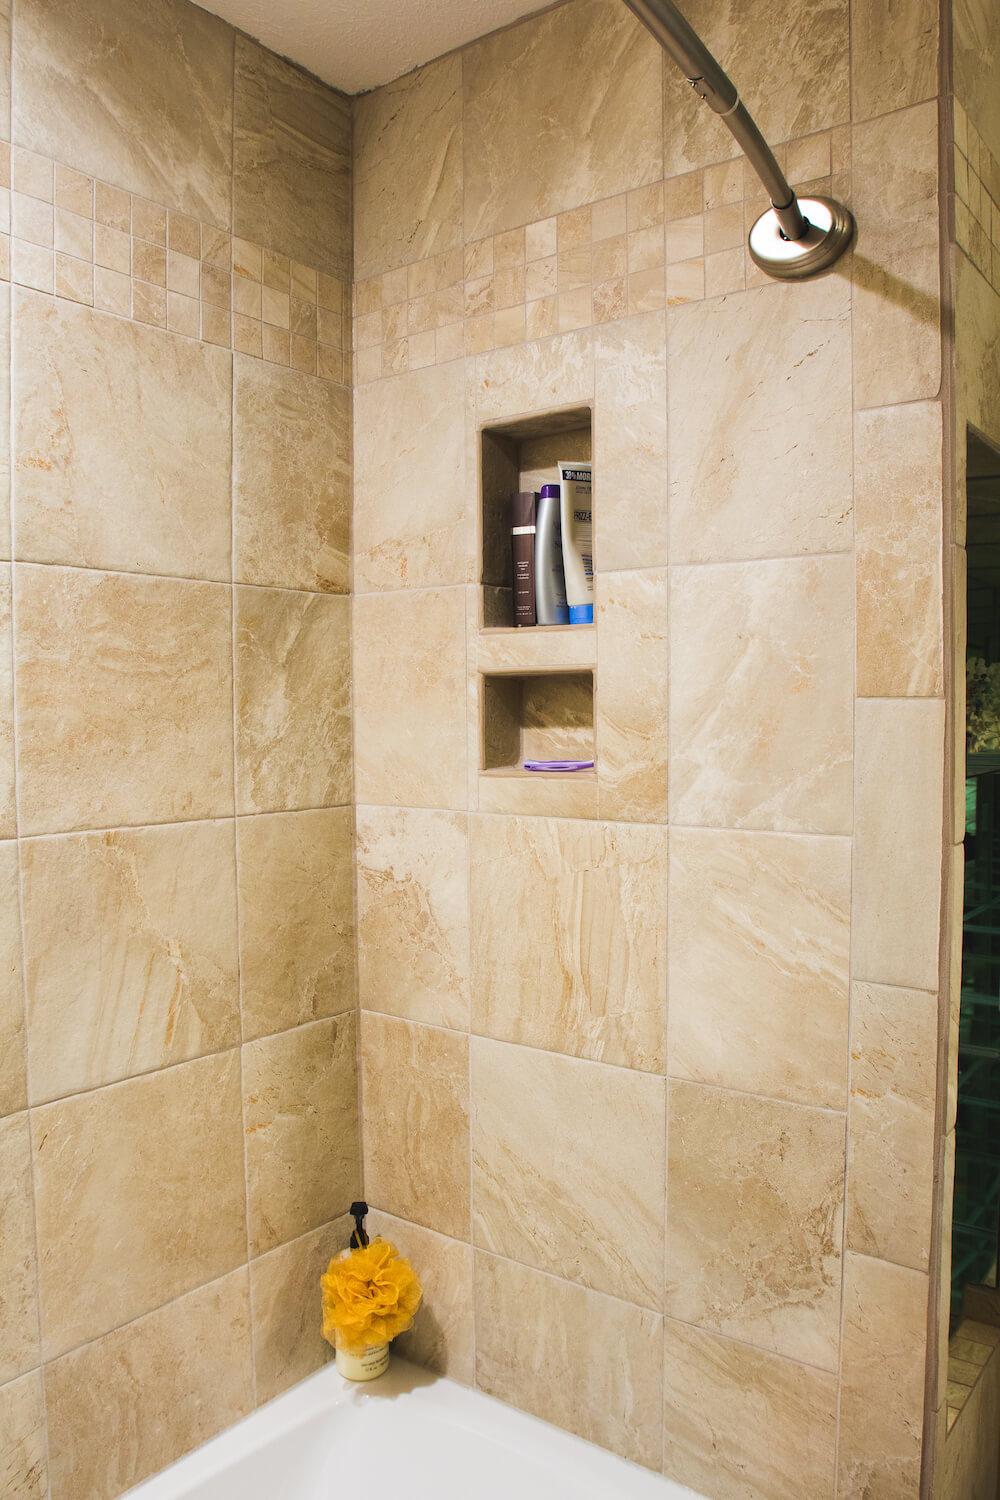 Cost To Tile A Shower How Much To Tile A Shower - Average cost to lay tile per square foot